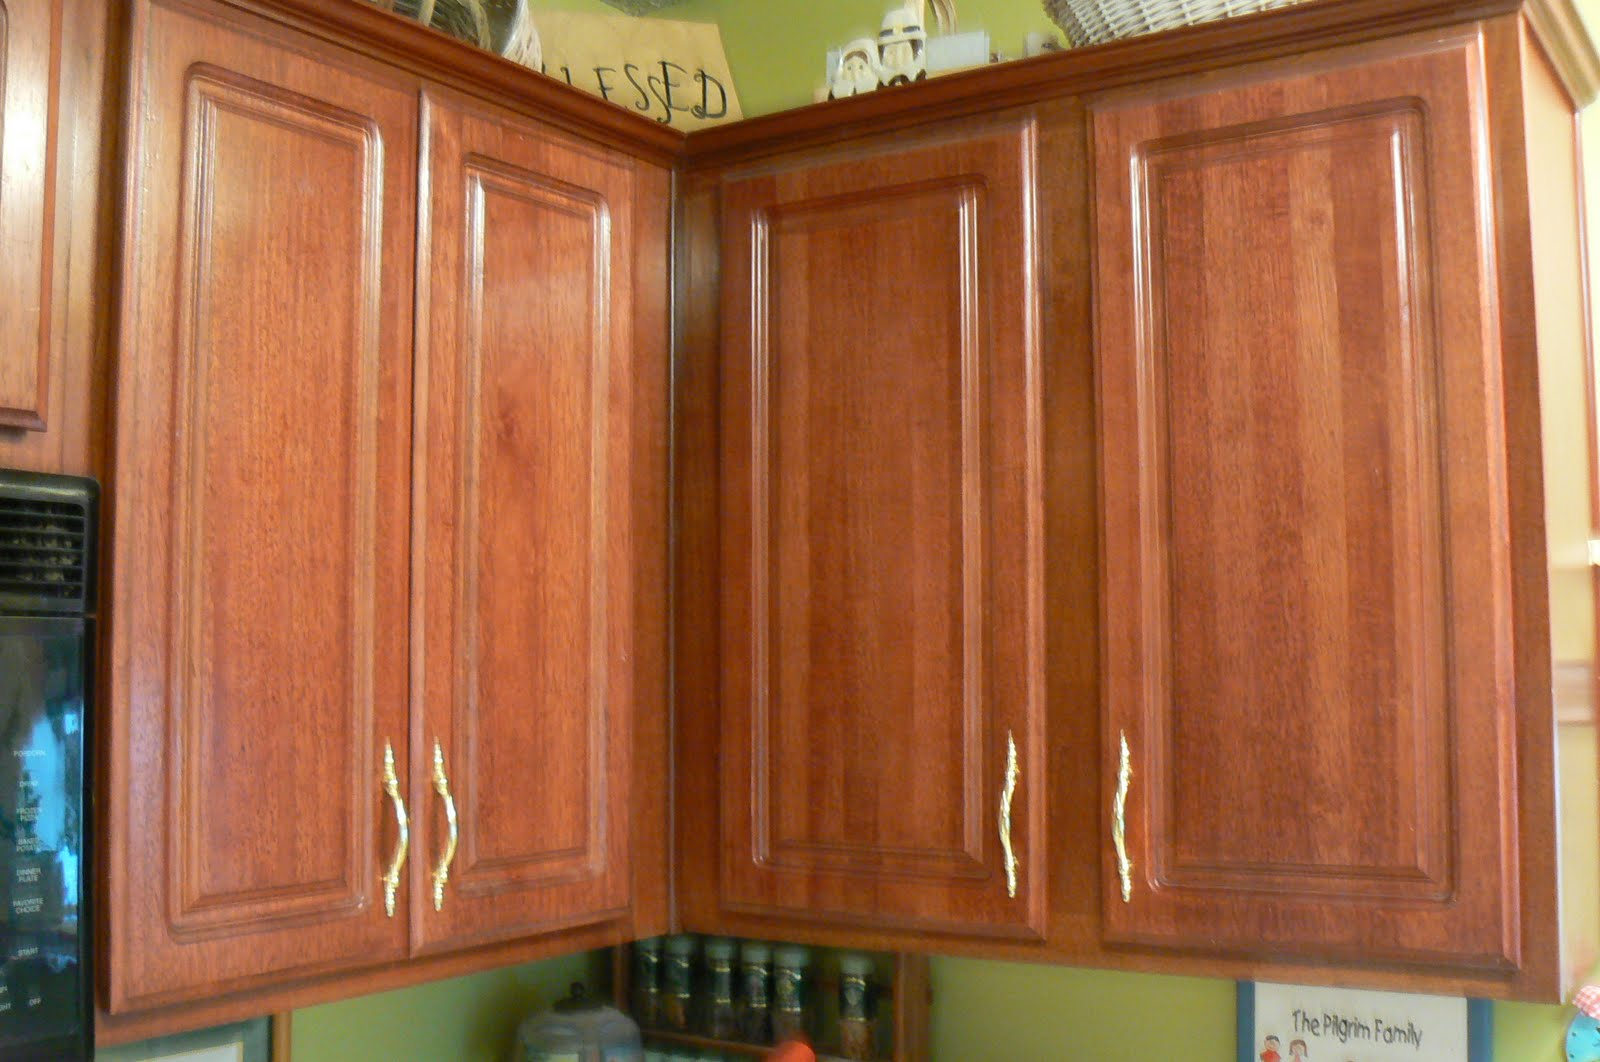 Used Kitchen Cabinets For Sale Tucson Az. Kitchen Cabinets Tucson Az   zitzat com